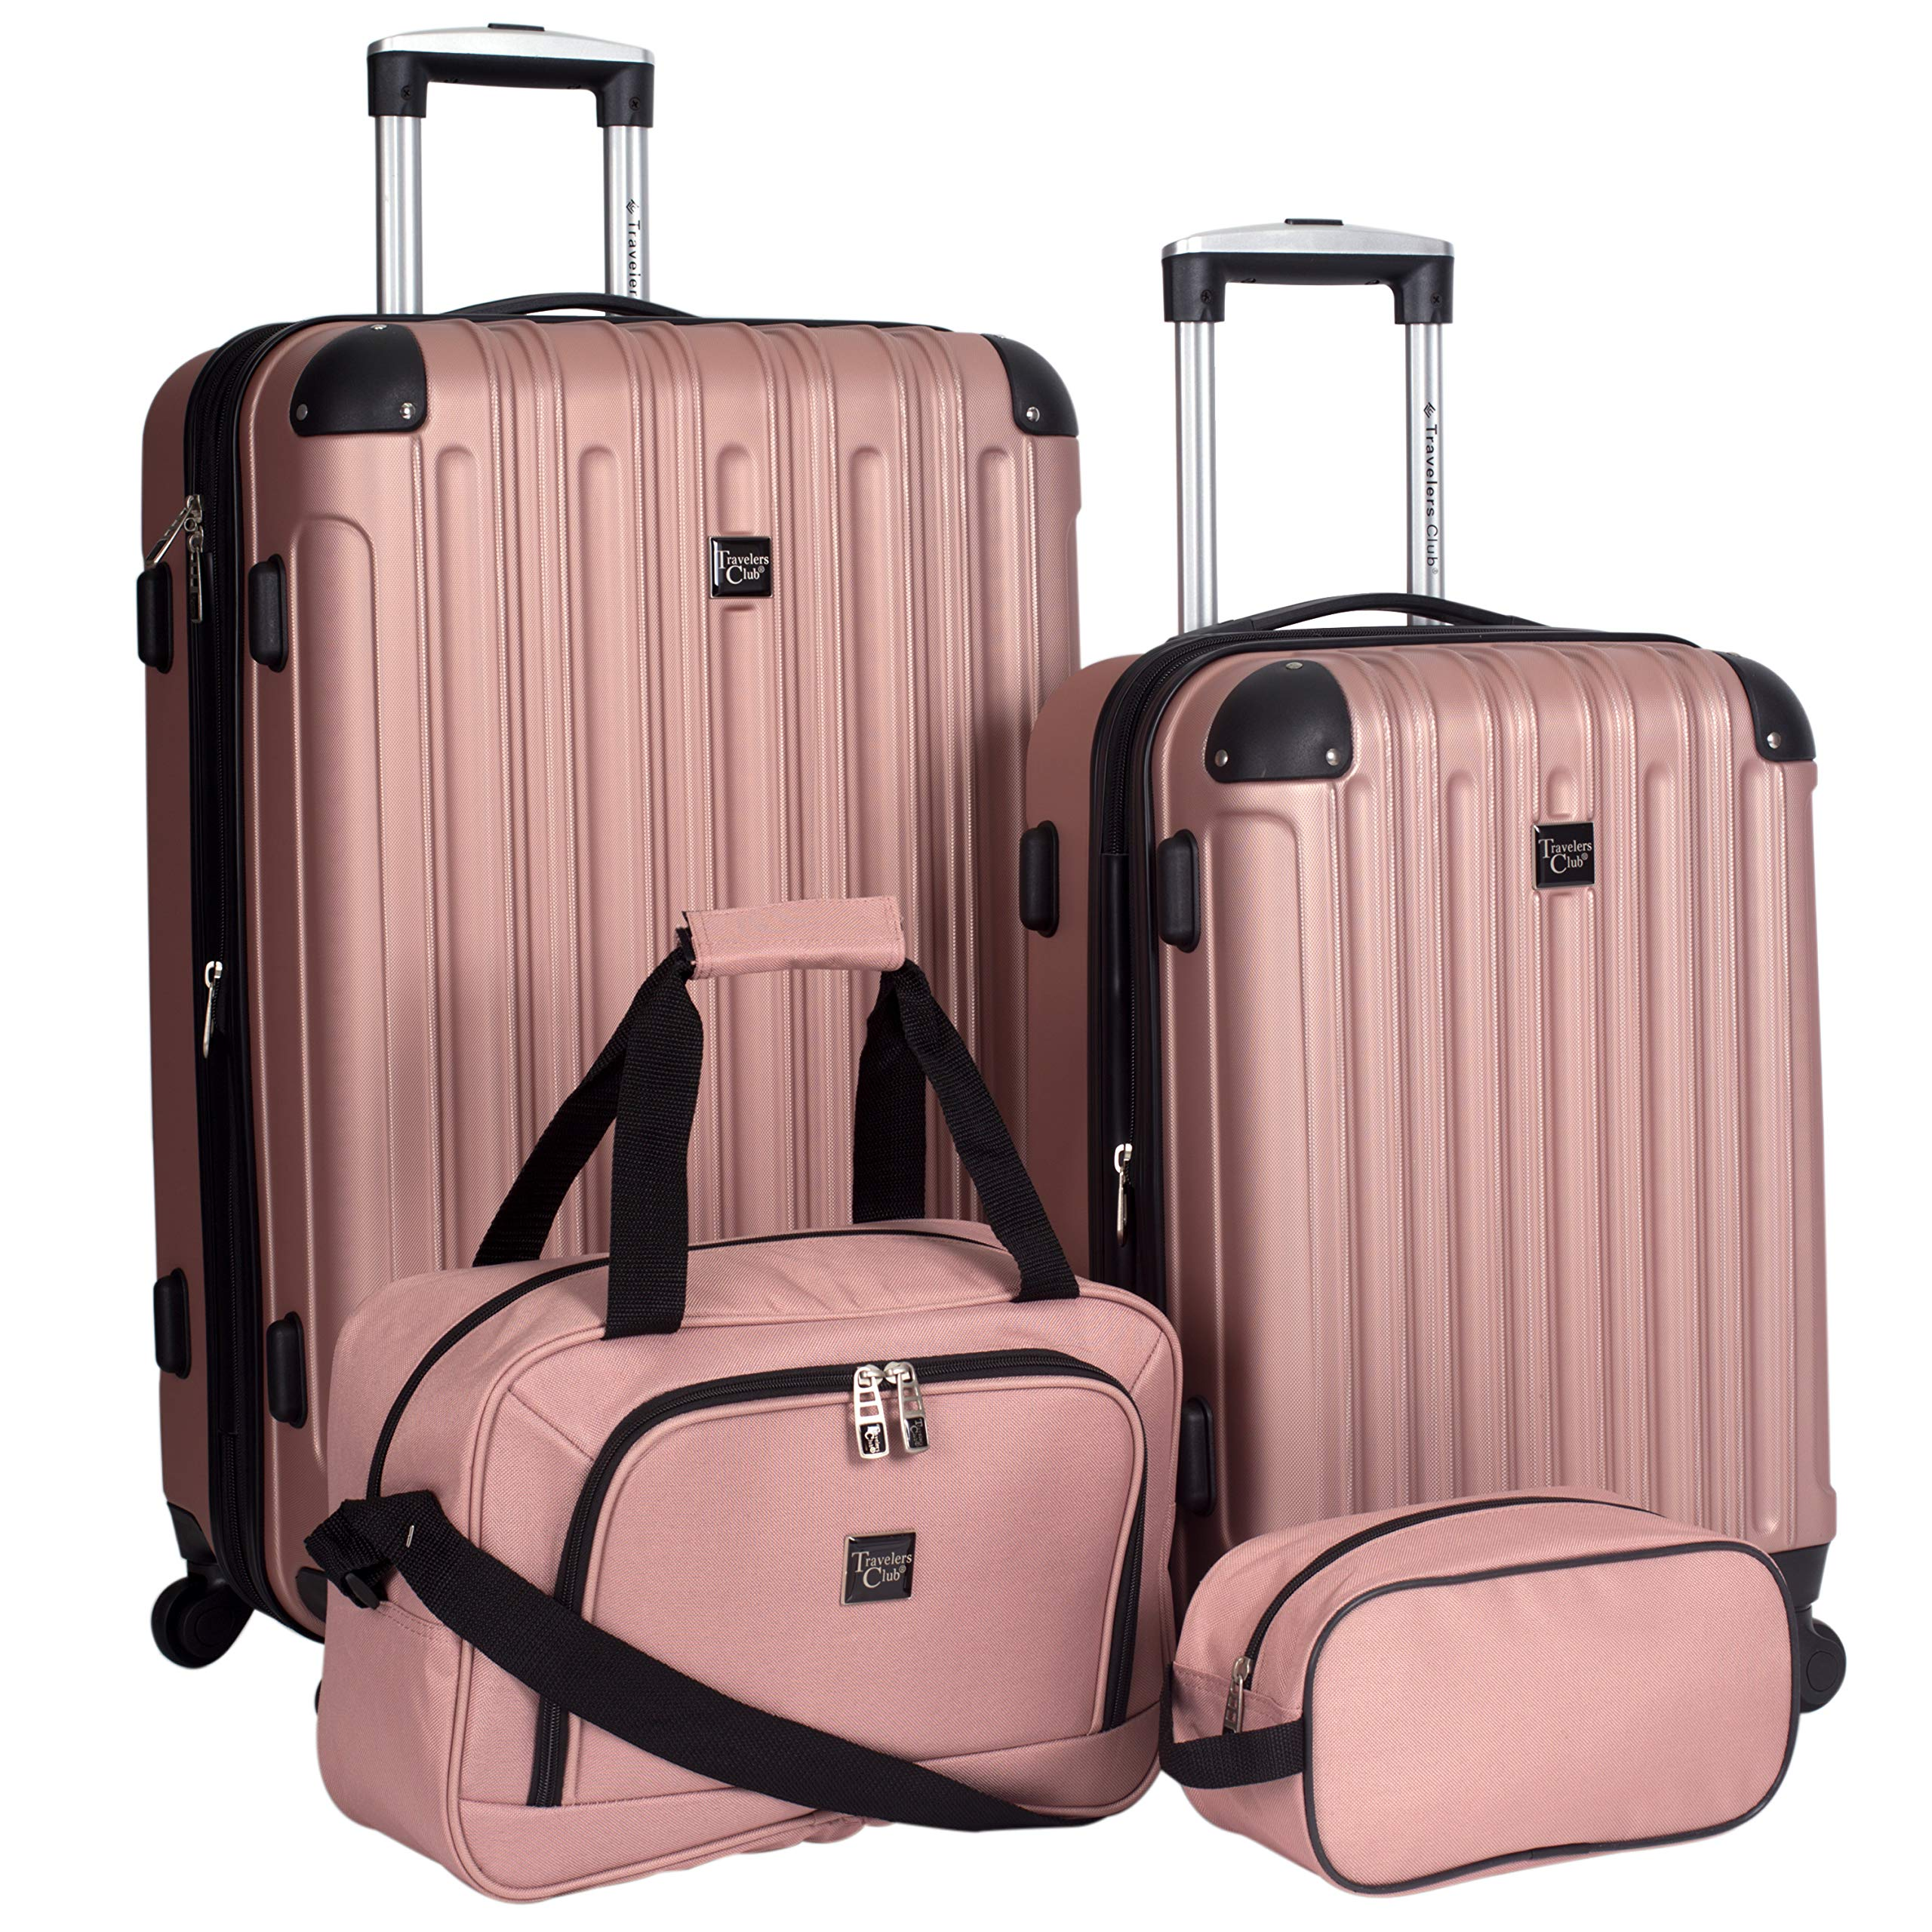 Travelers Club Luggage 4 Piece Luggage Set, Rose Gold, 4 PC by Traveler's Club